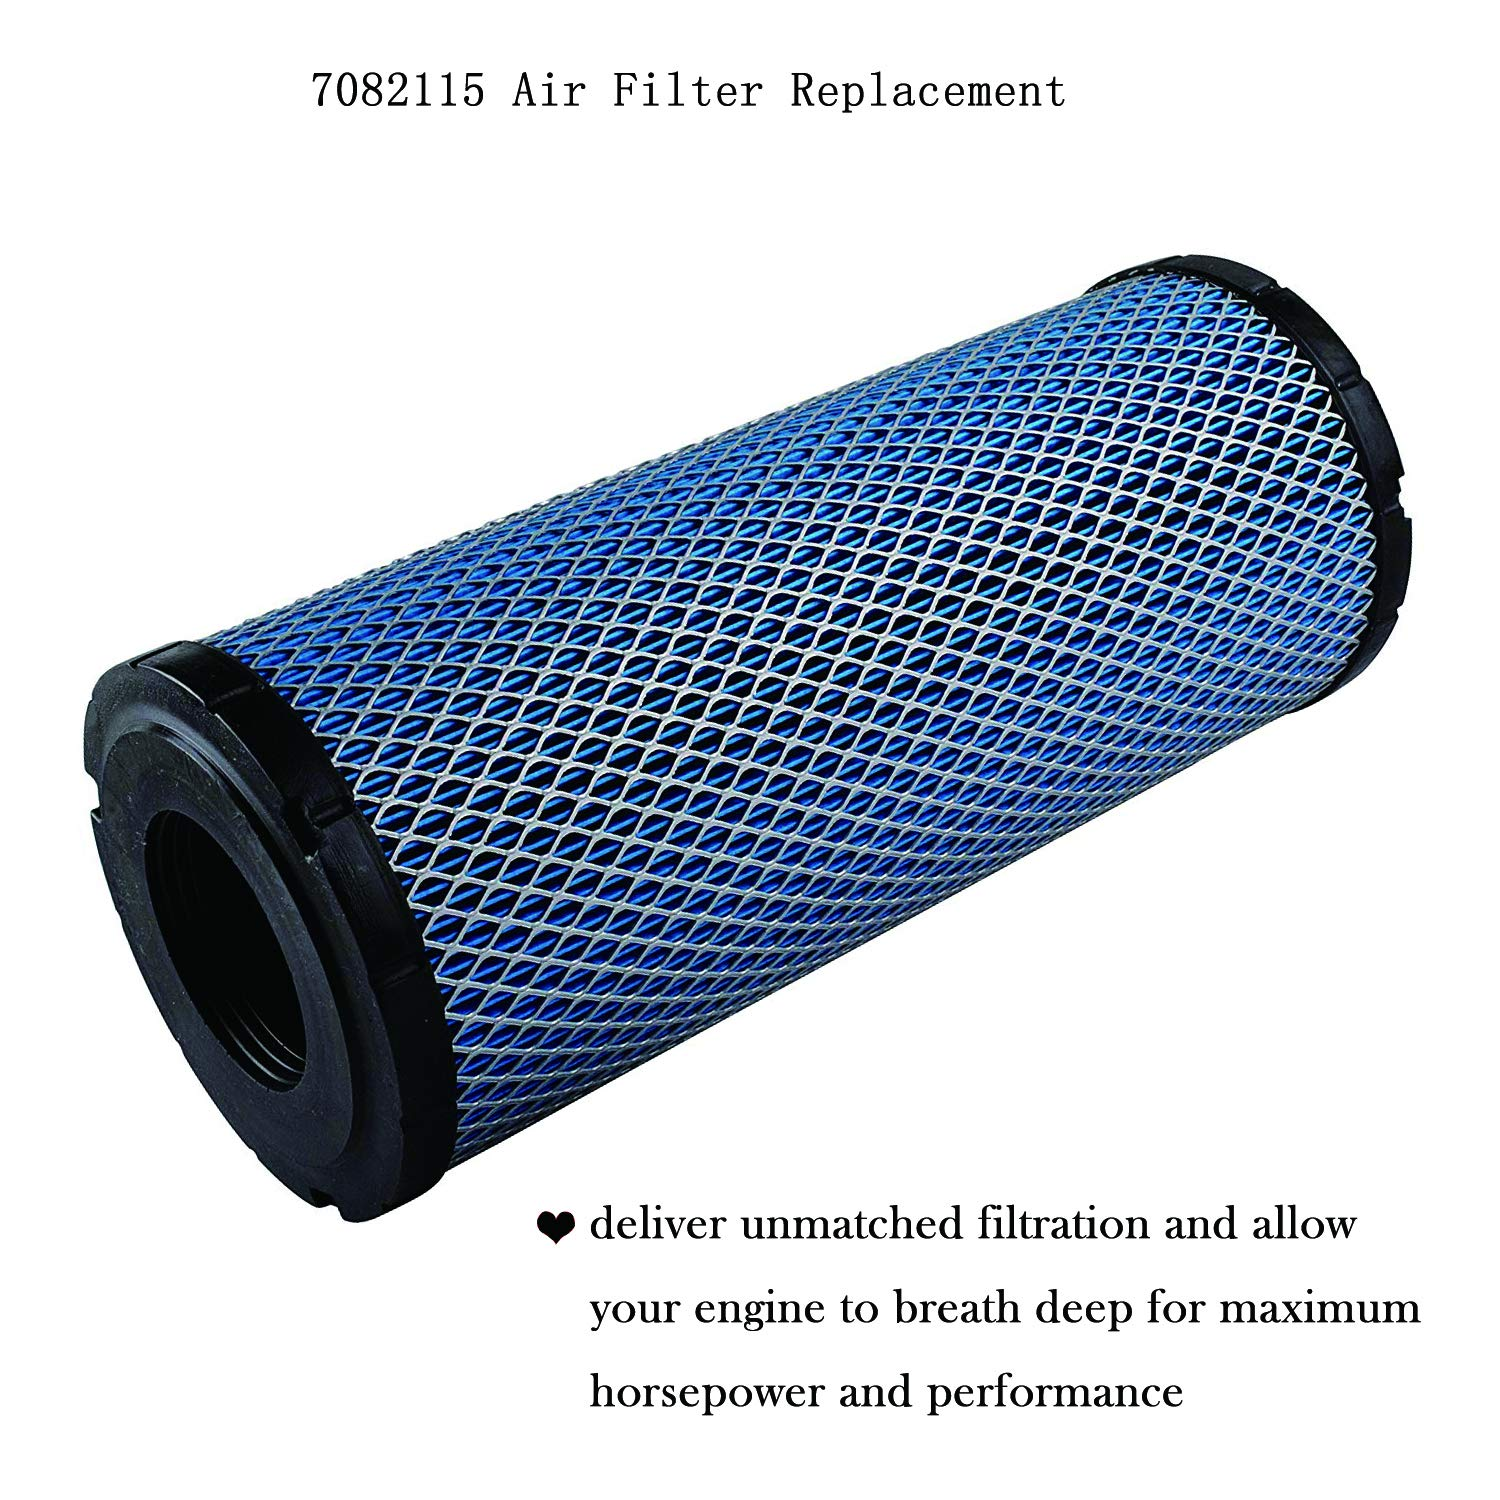 7082115 Air Filter Replacement Compatible with Polaris ACE 900, General 1000, General 4 1000, RZR 4 900, RZR 900, RZR S 1000 2015-2018 by Wddby (Image #3)